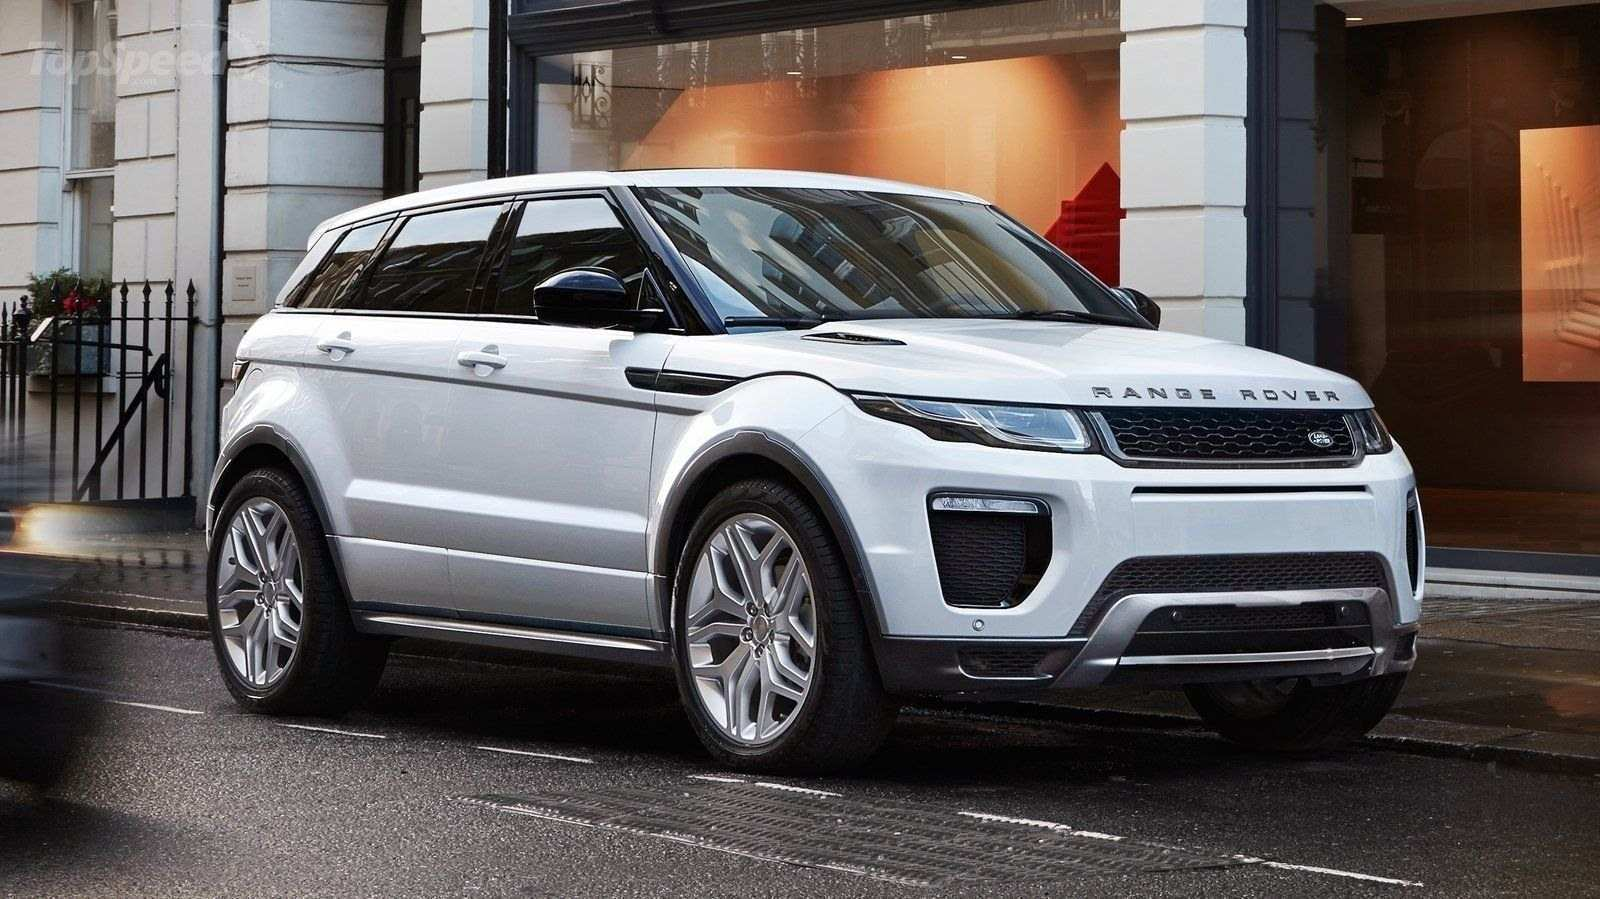 35 Gallery of 2020 Range Rover Evoque Xl Engine with 2020 Range Rover Evoque Xl